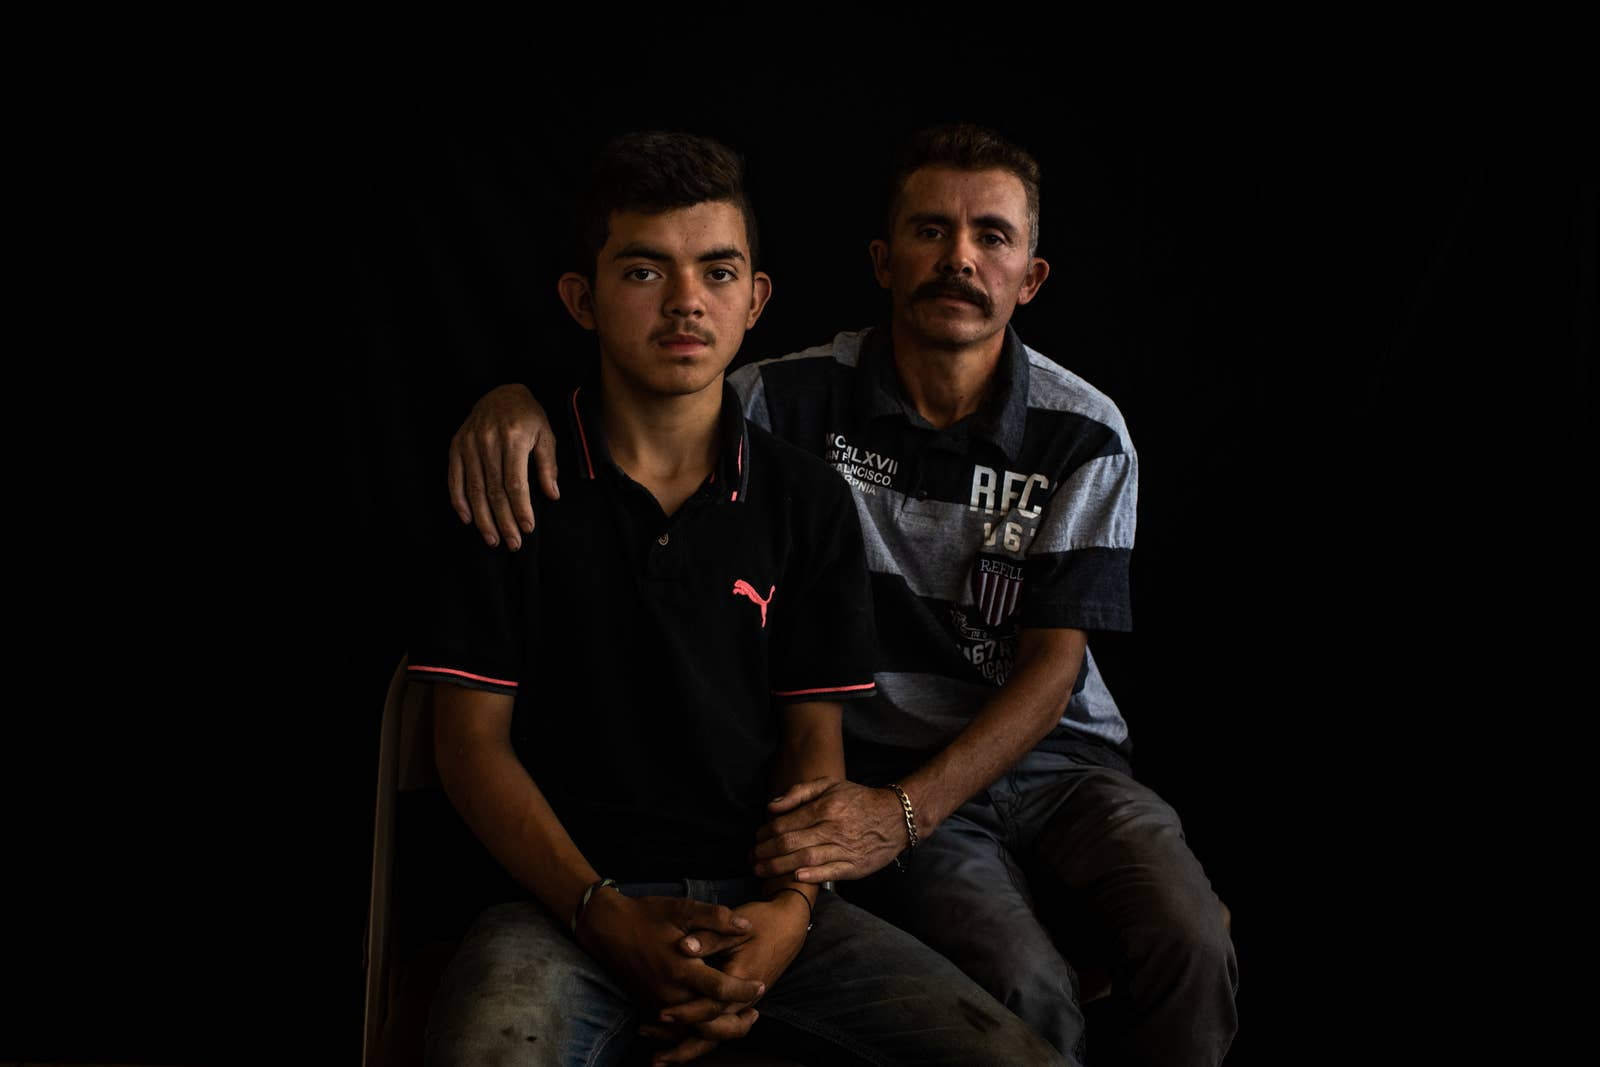 A man sits beside his son and has an arm around him